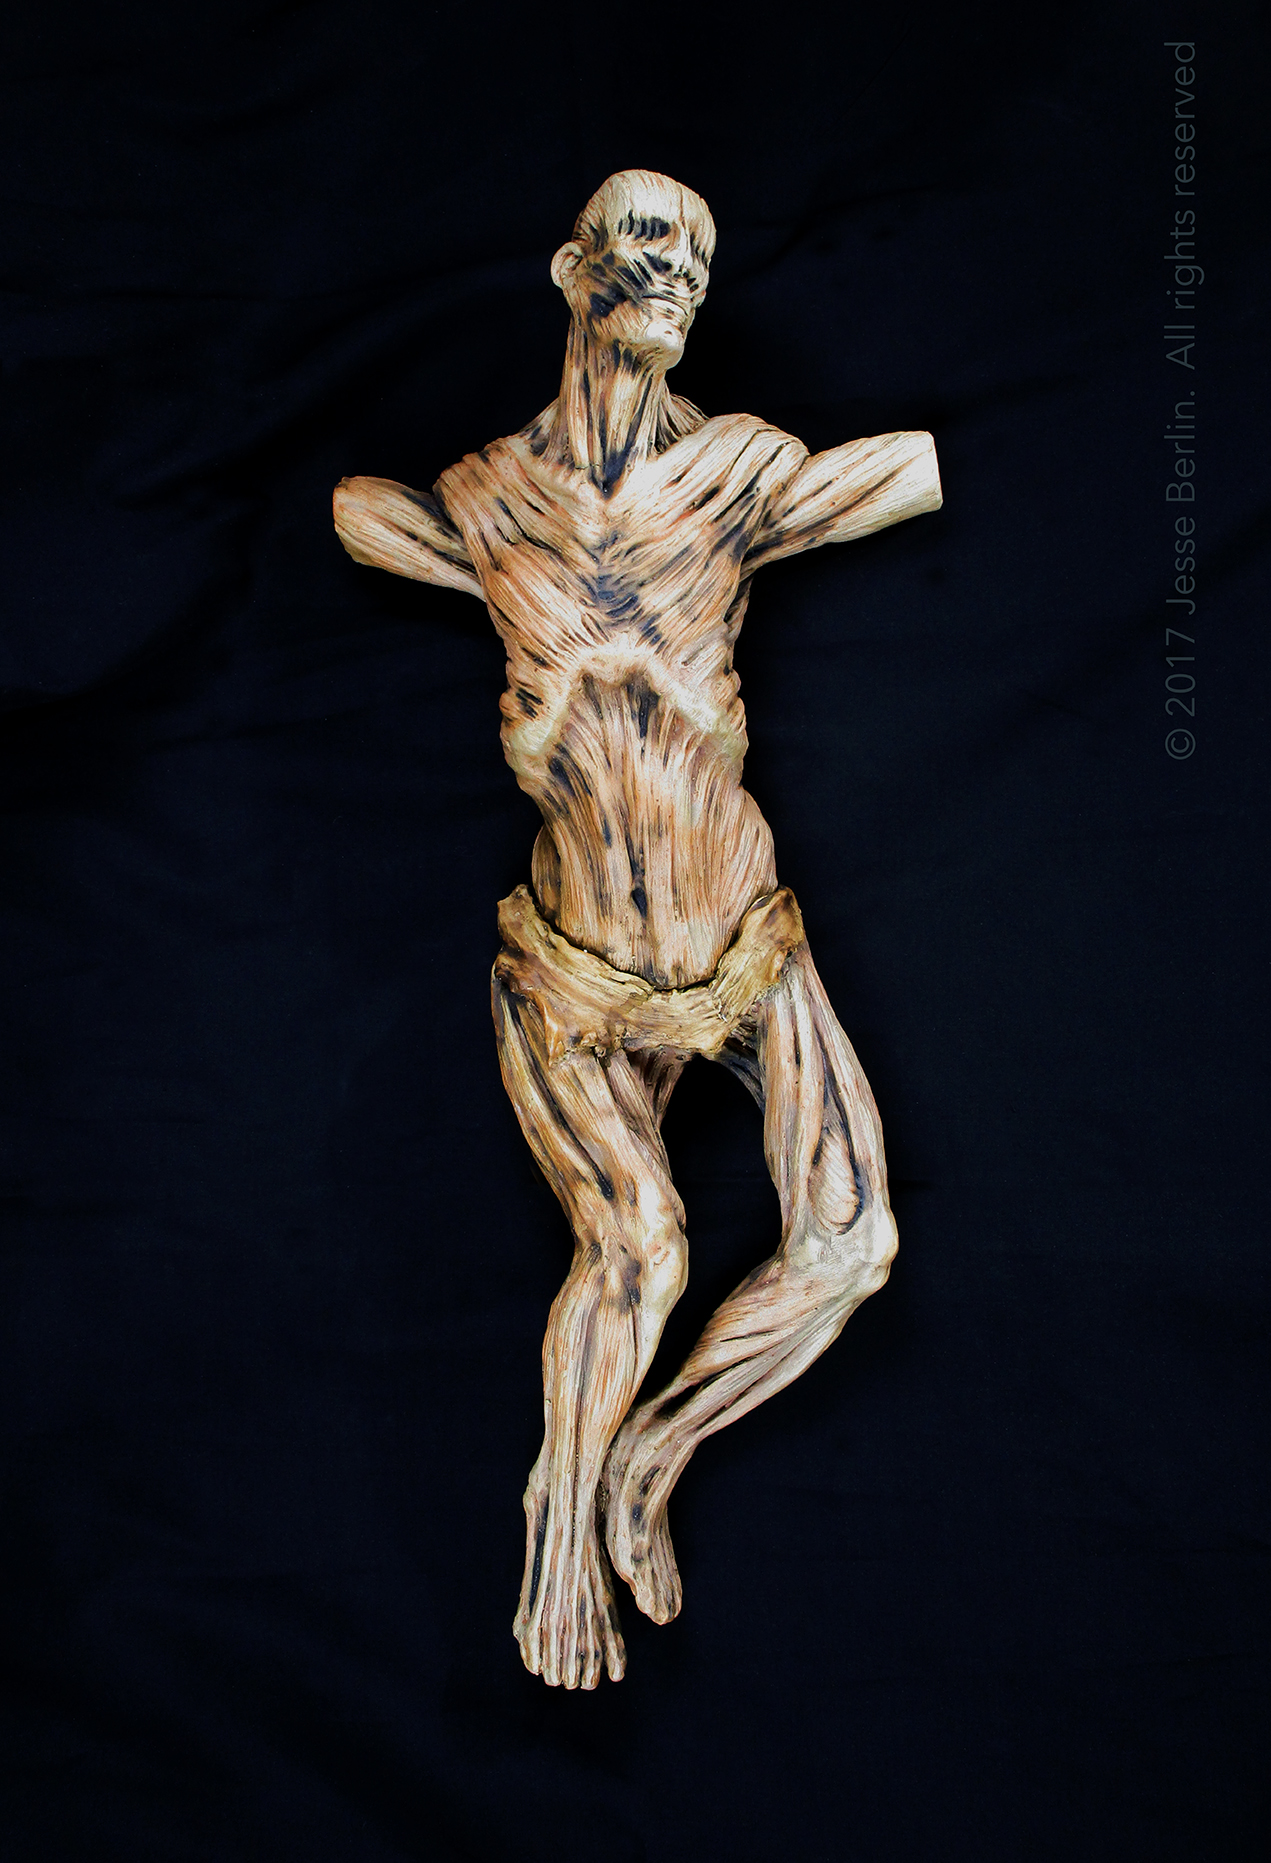 The Flayed Man